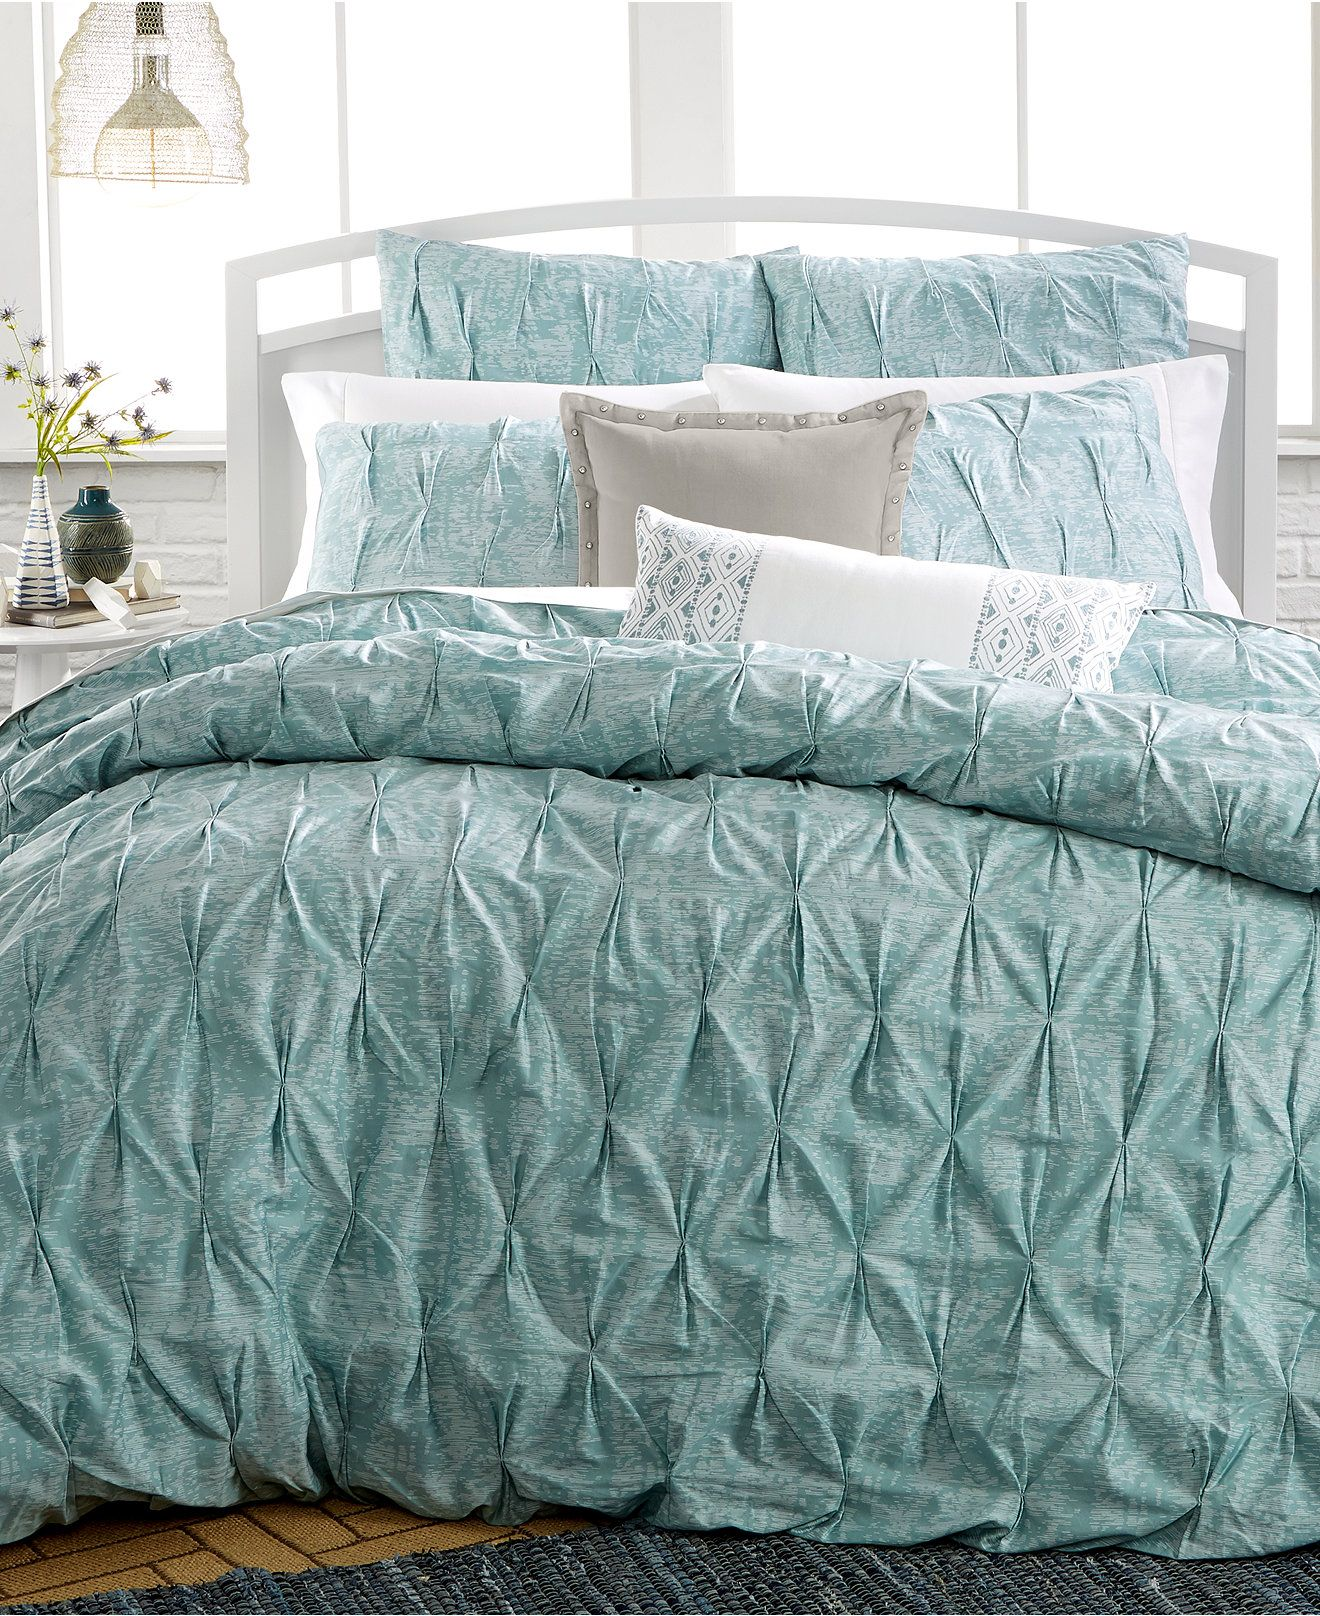 jacobean p set blue bedding comforter arabelle damask